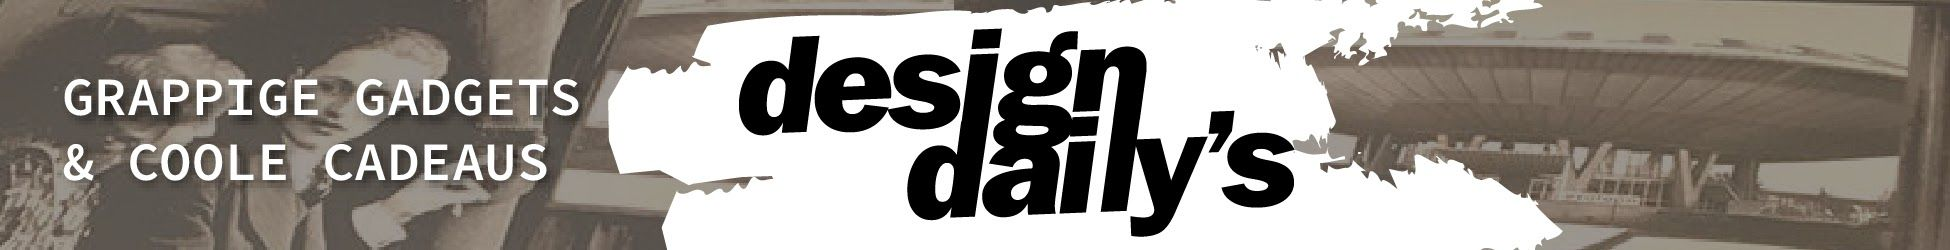 Banner Design Daily's